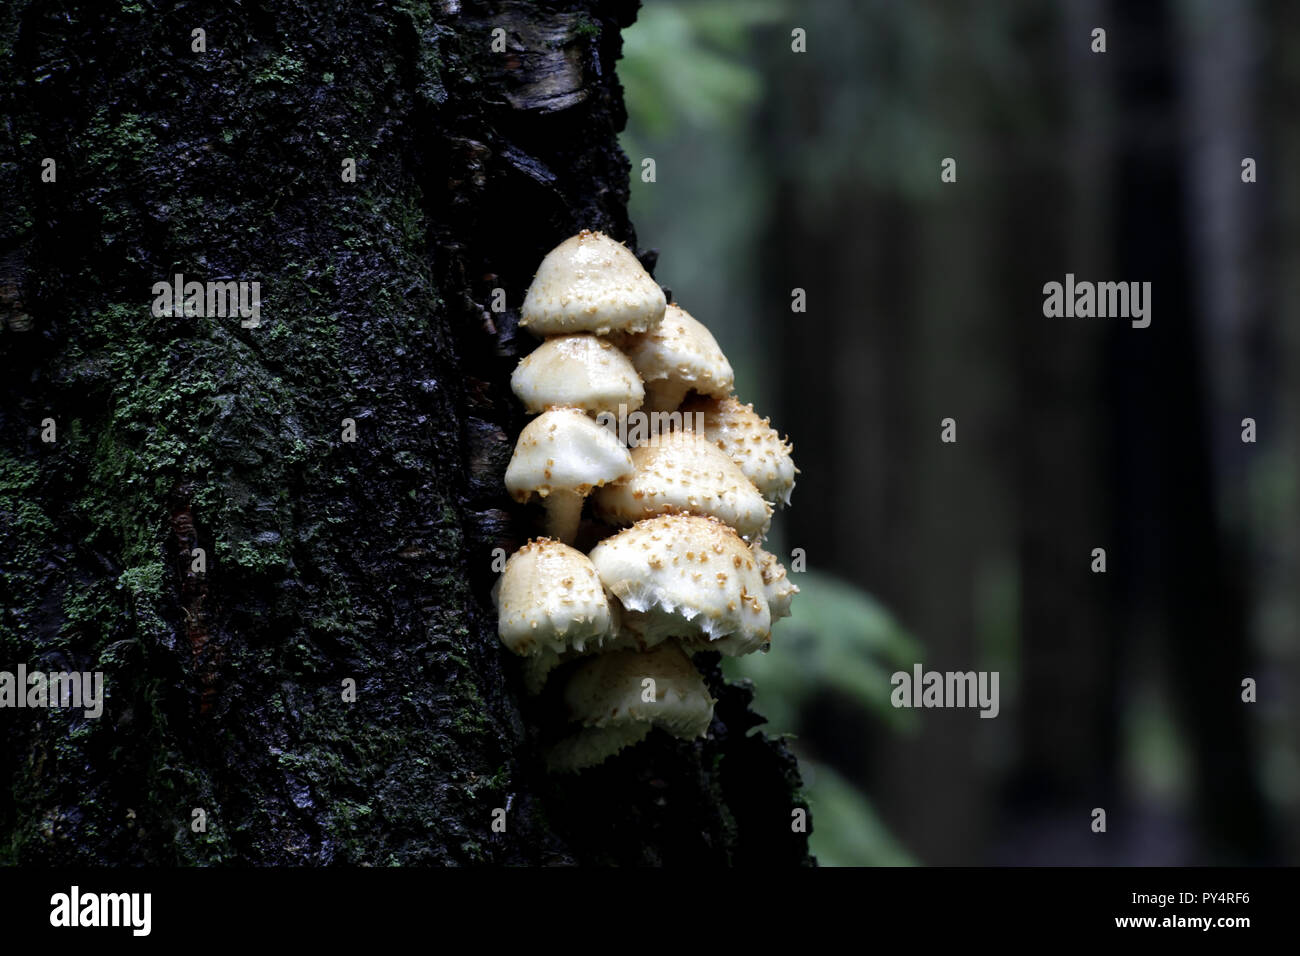 Pholiota squarrosa, commonly known as the shaggy scalycap, the shaggy Pholiota, or the scaly Pholiota. - Stock Image